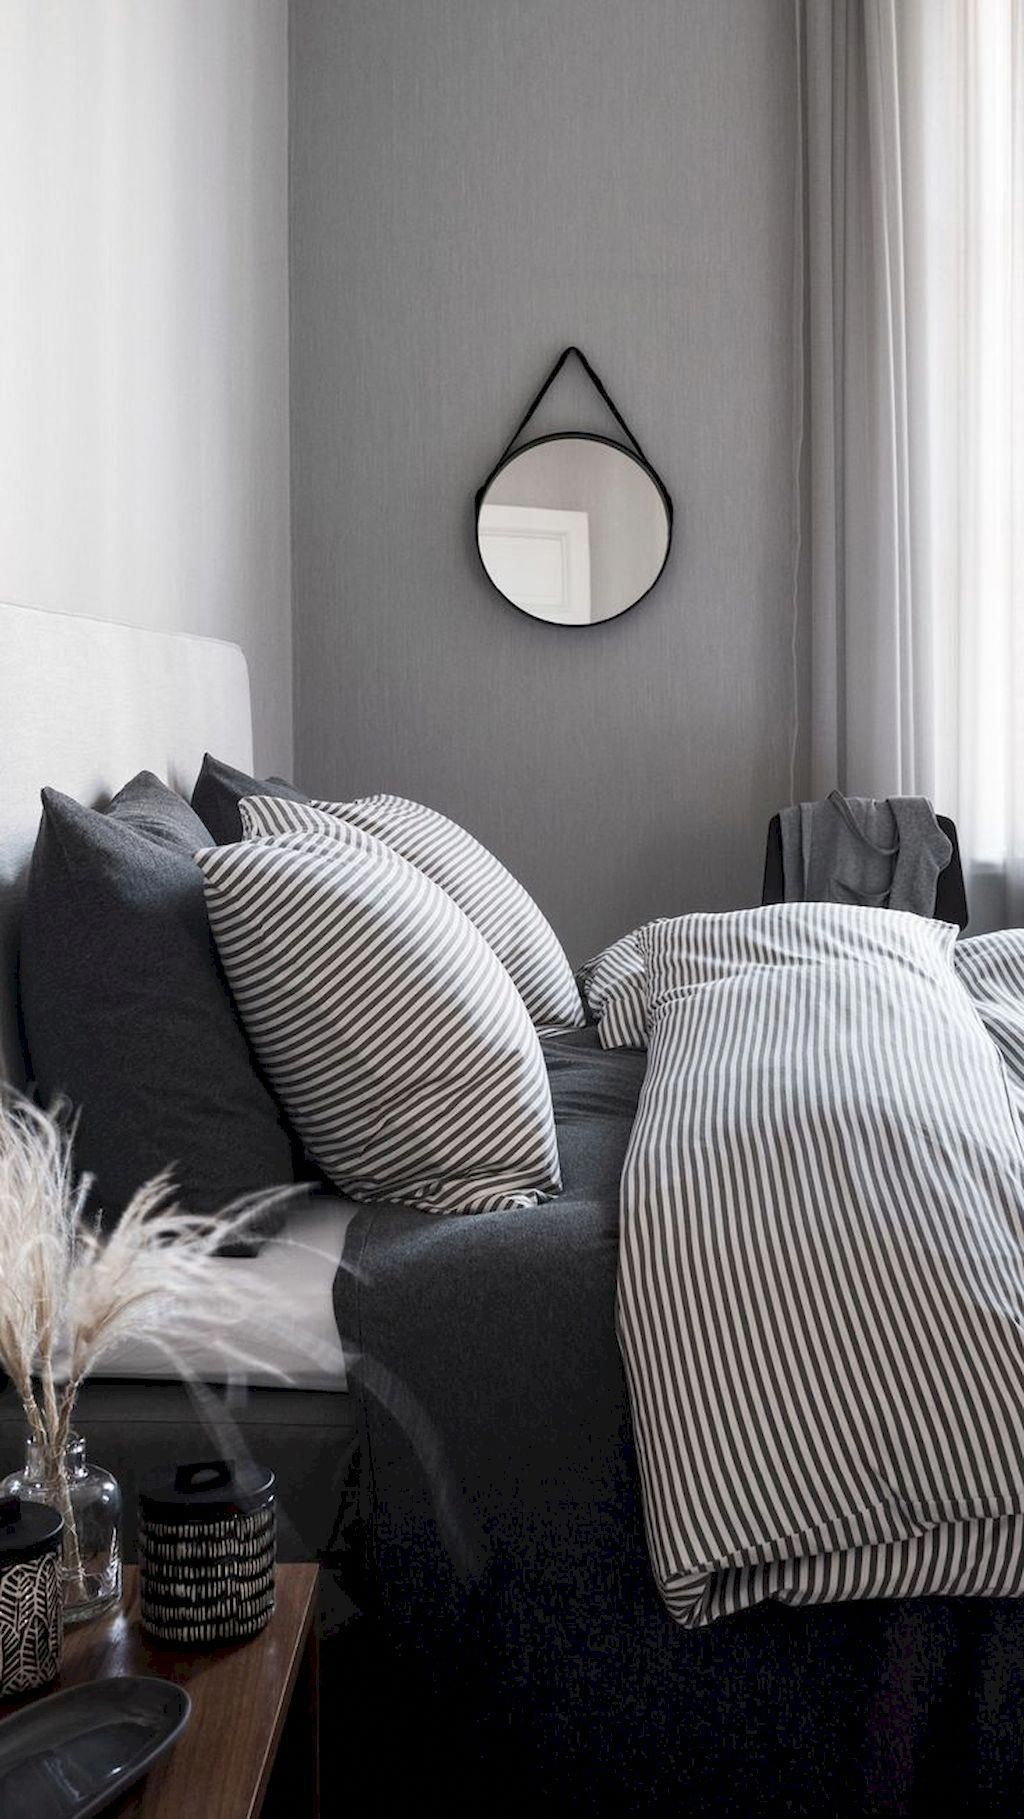 timeless black and white bedrooms that know how to stand out also best home decor images in arquitetura bed room rh pinterest